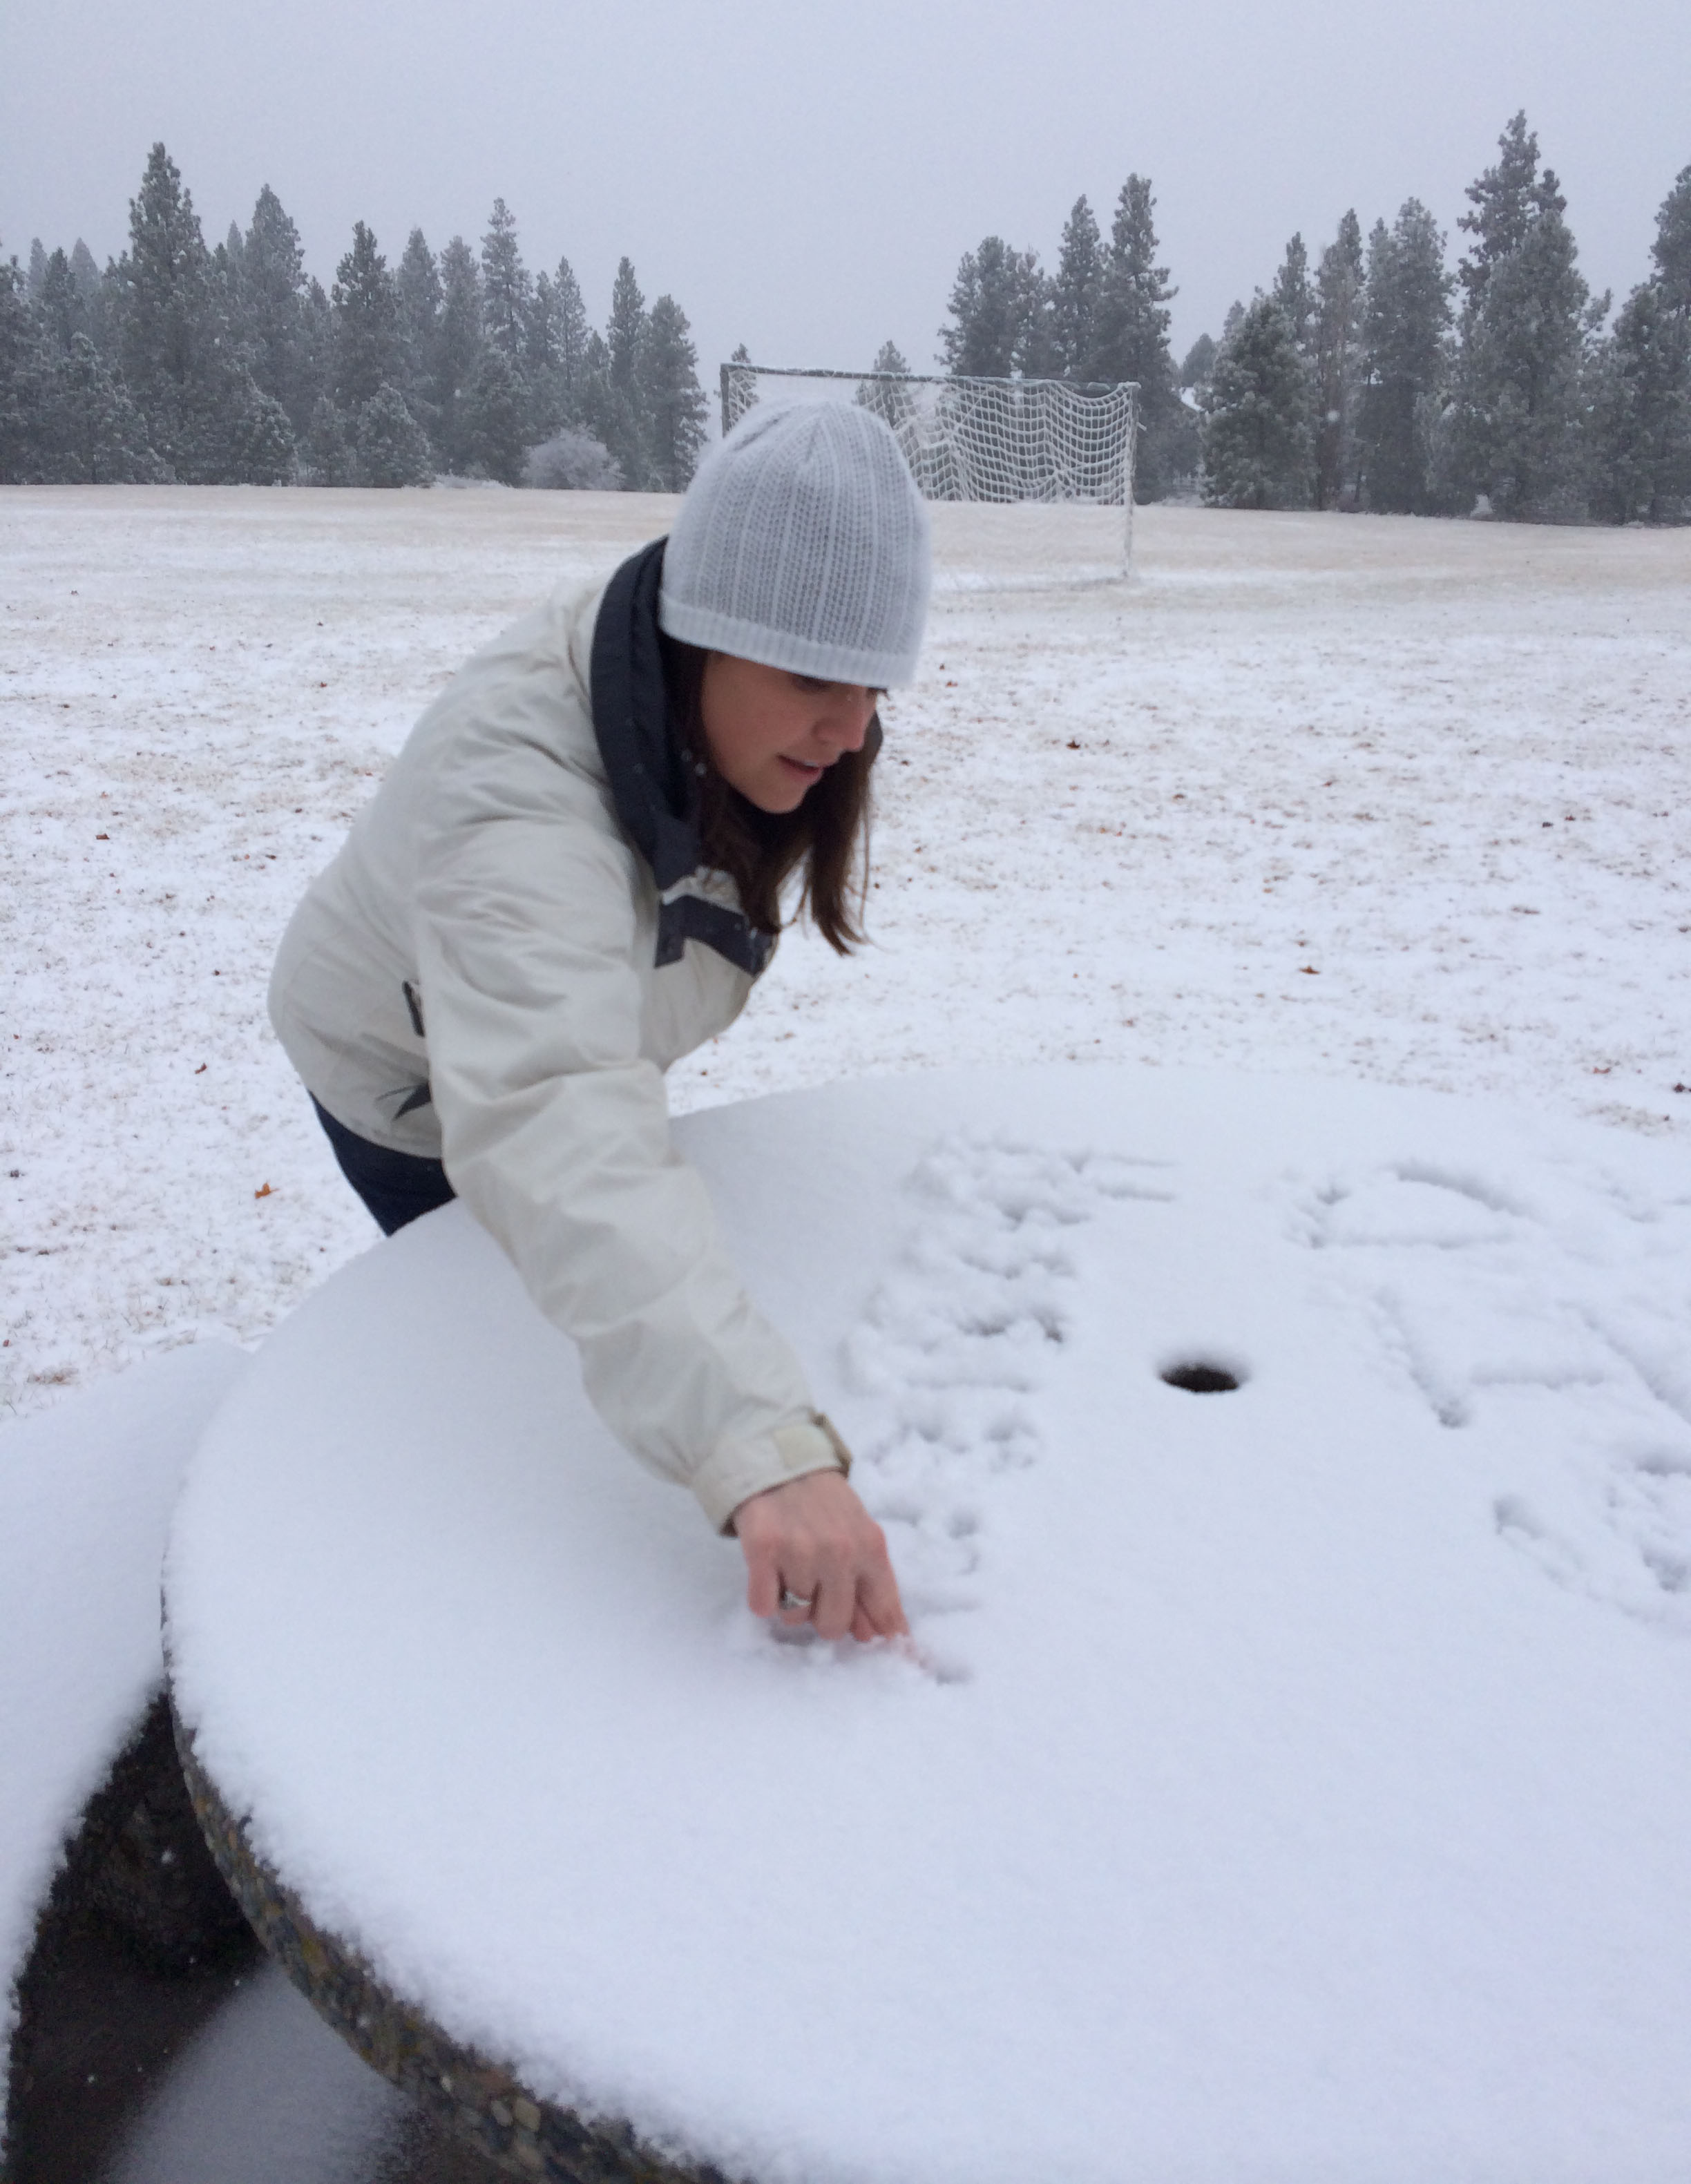 Sidney at Camelot Park writing the names of her niece and nephew into the snow.